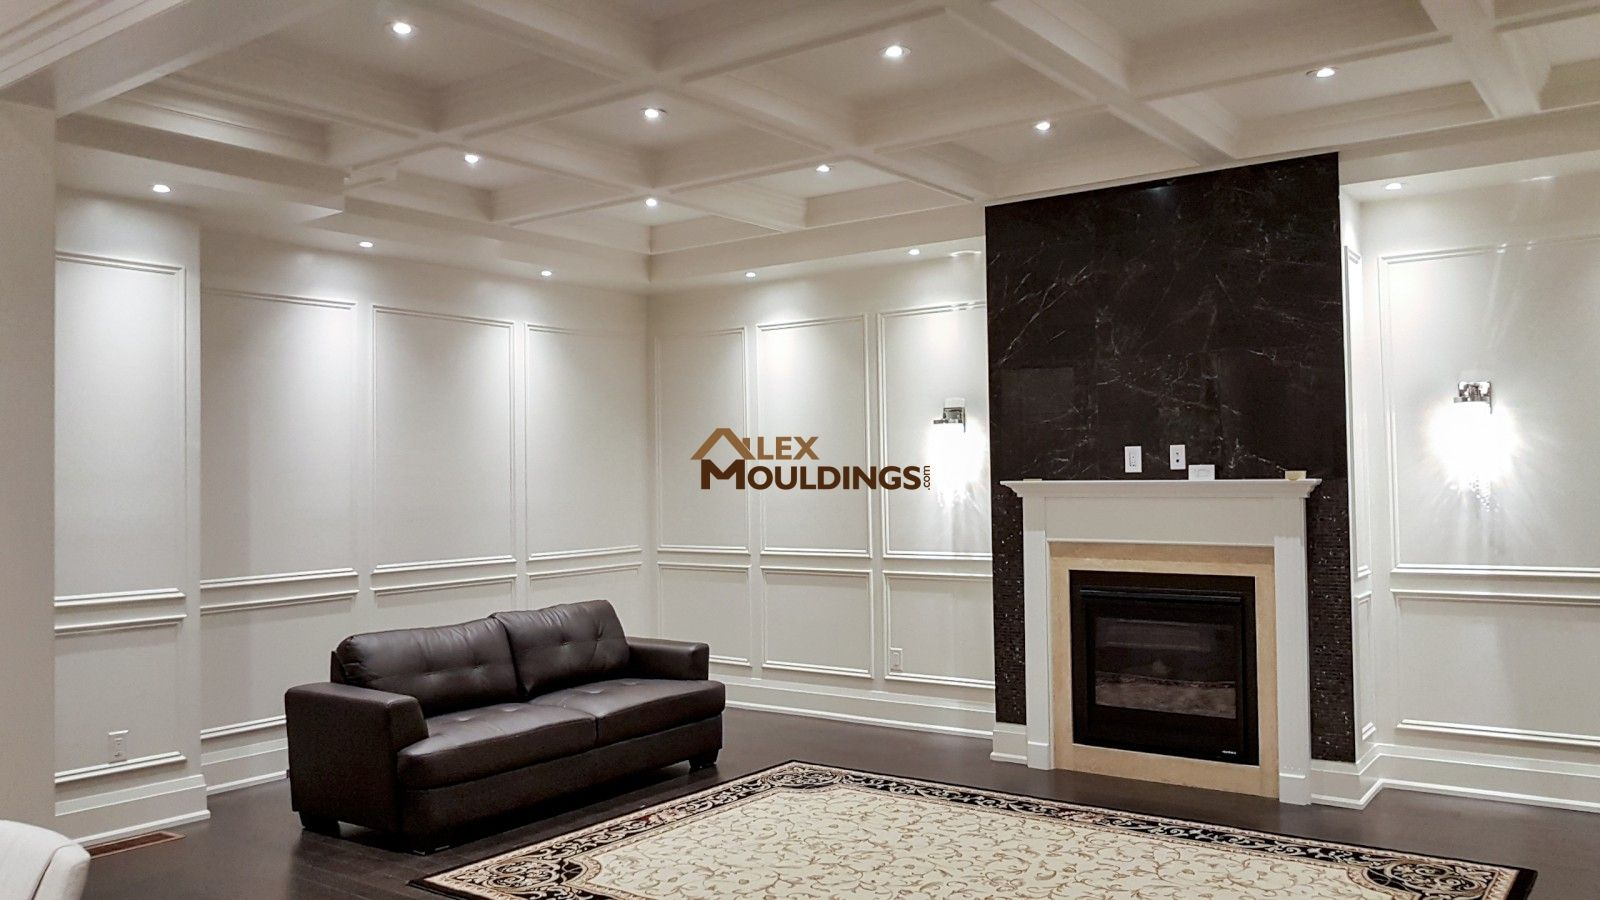 Captivating Toronto Crown Moulding Milwork, Decorative Wainscoting 3D Wall Panels  Ideas, Coffered Ceilings, Potlights